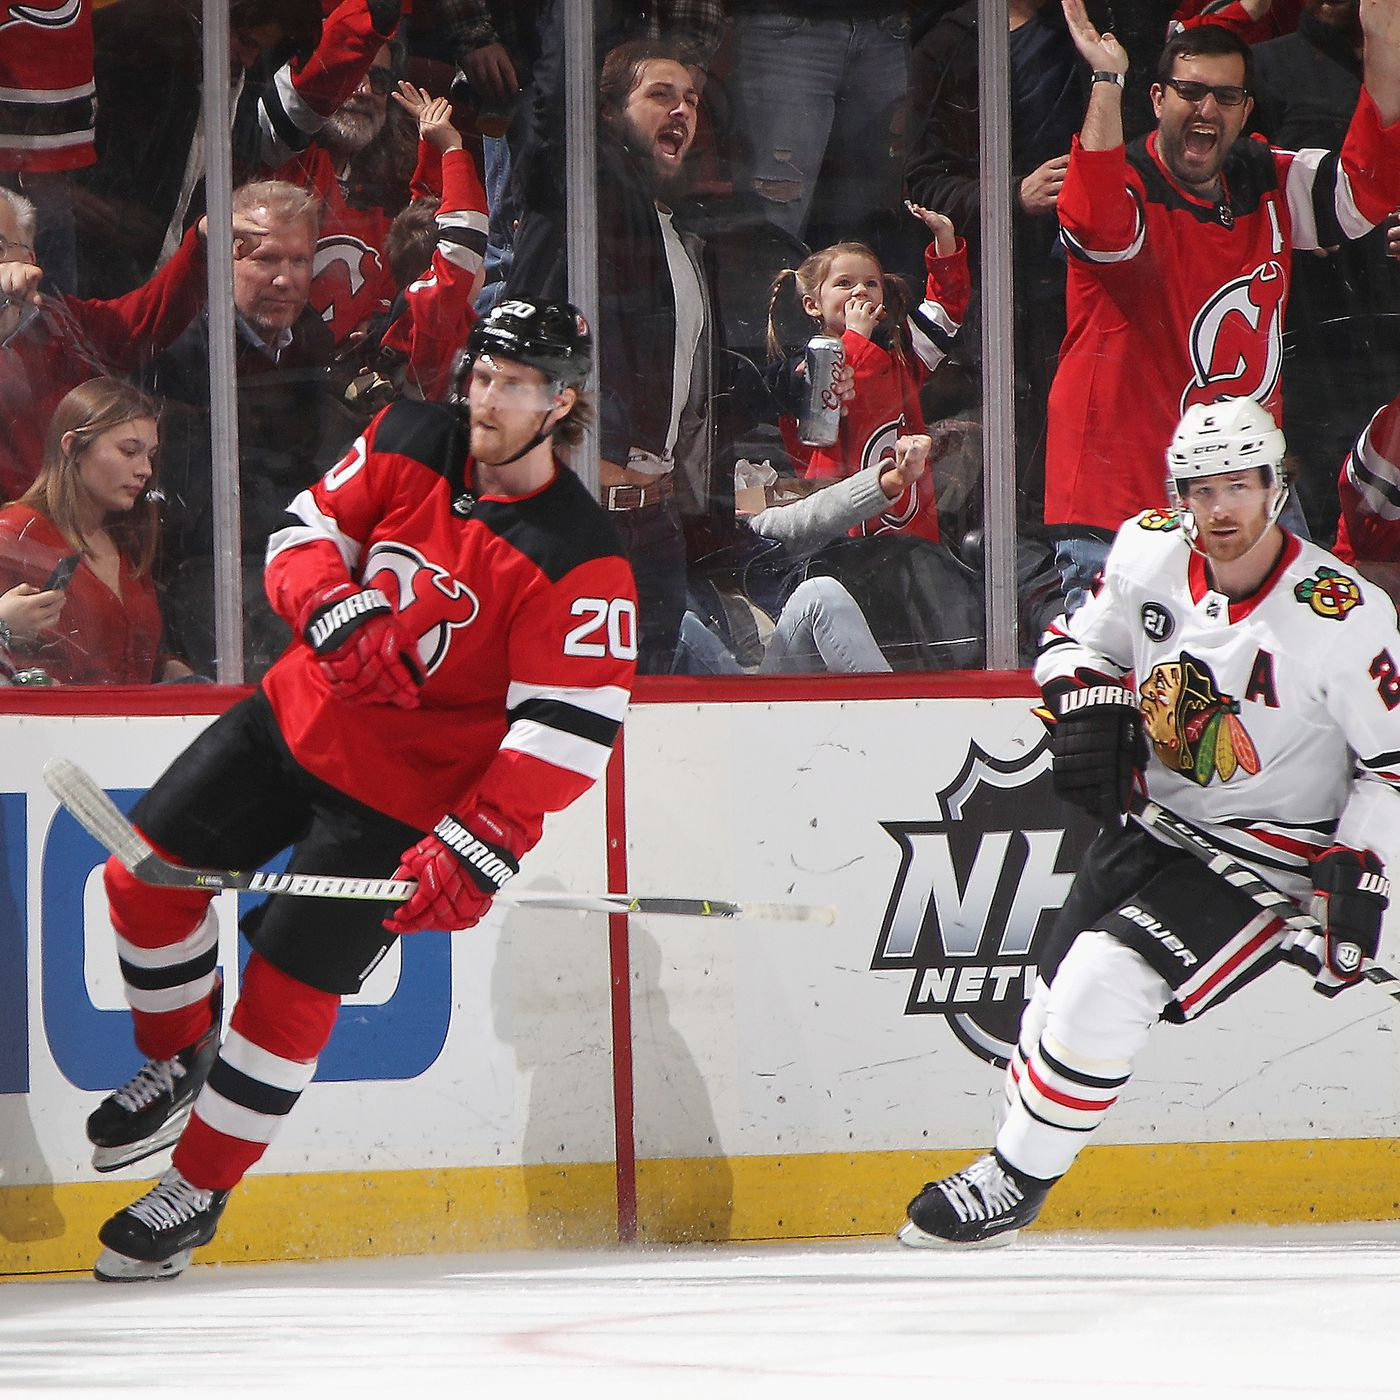 bfdf959ab The AAtJ New Jersey Devils Month in Review of January 2019 - All ...